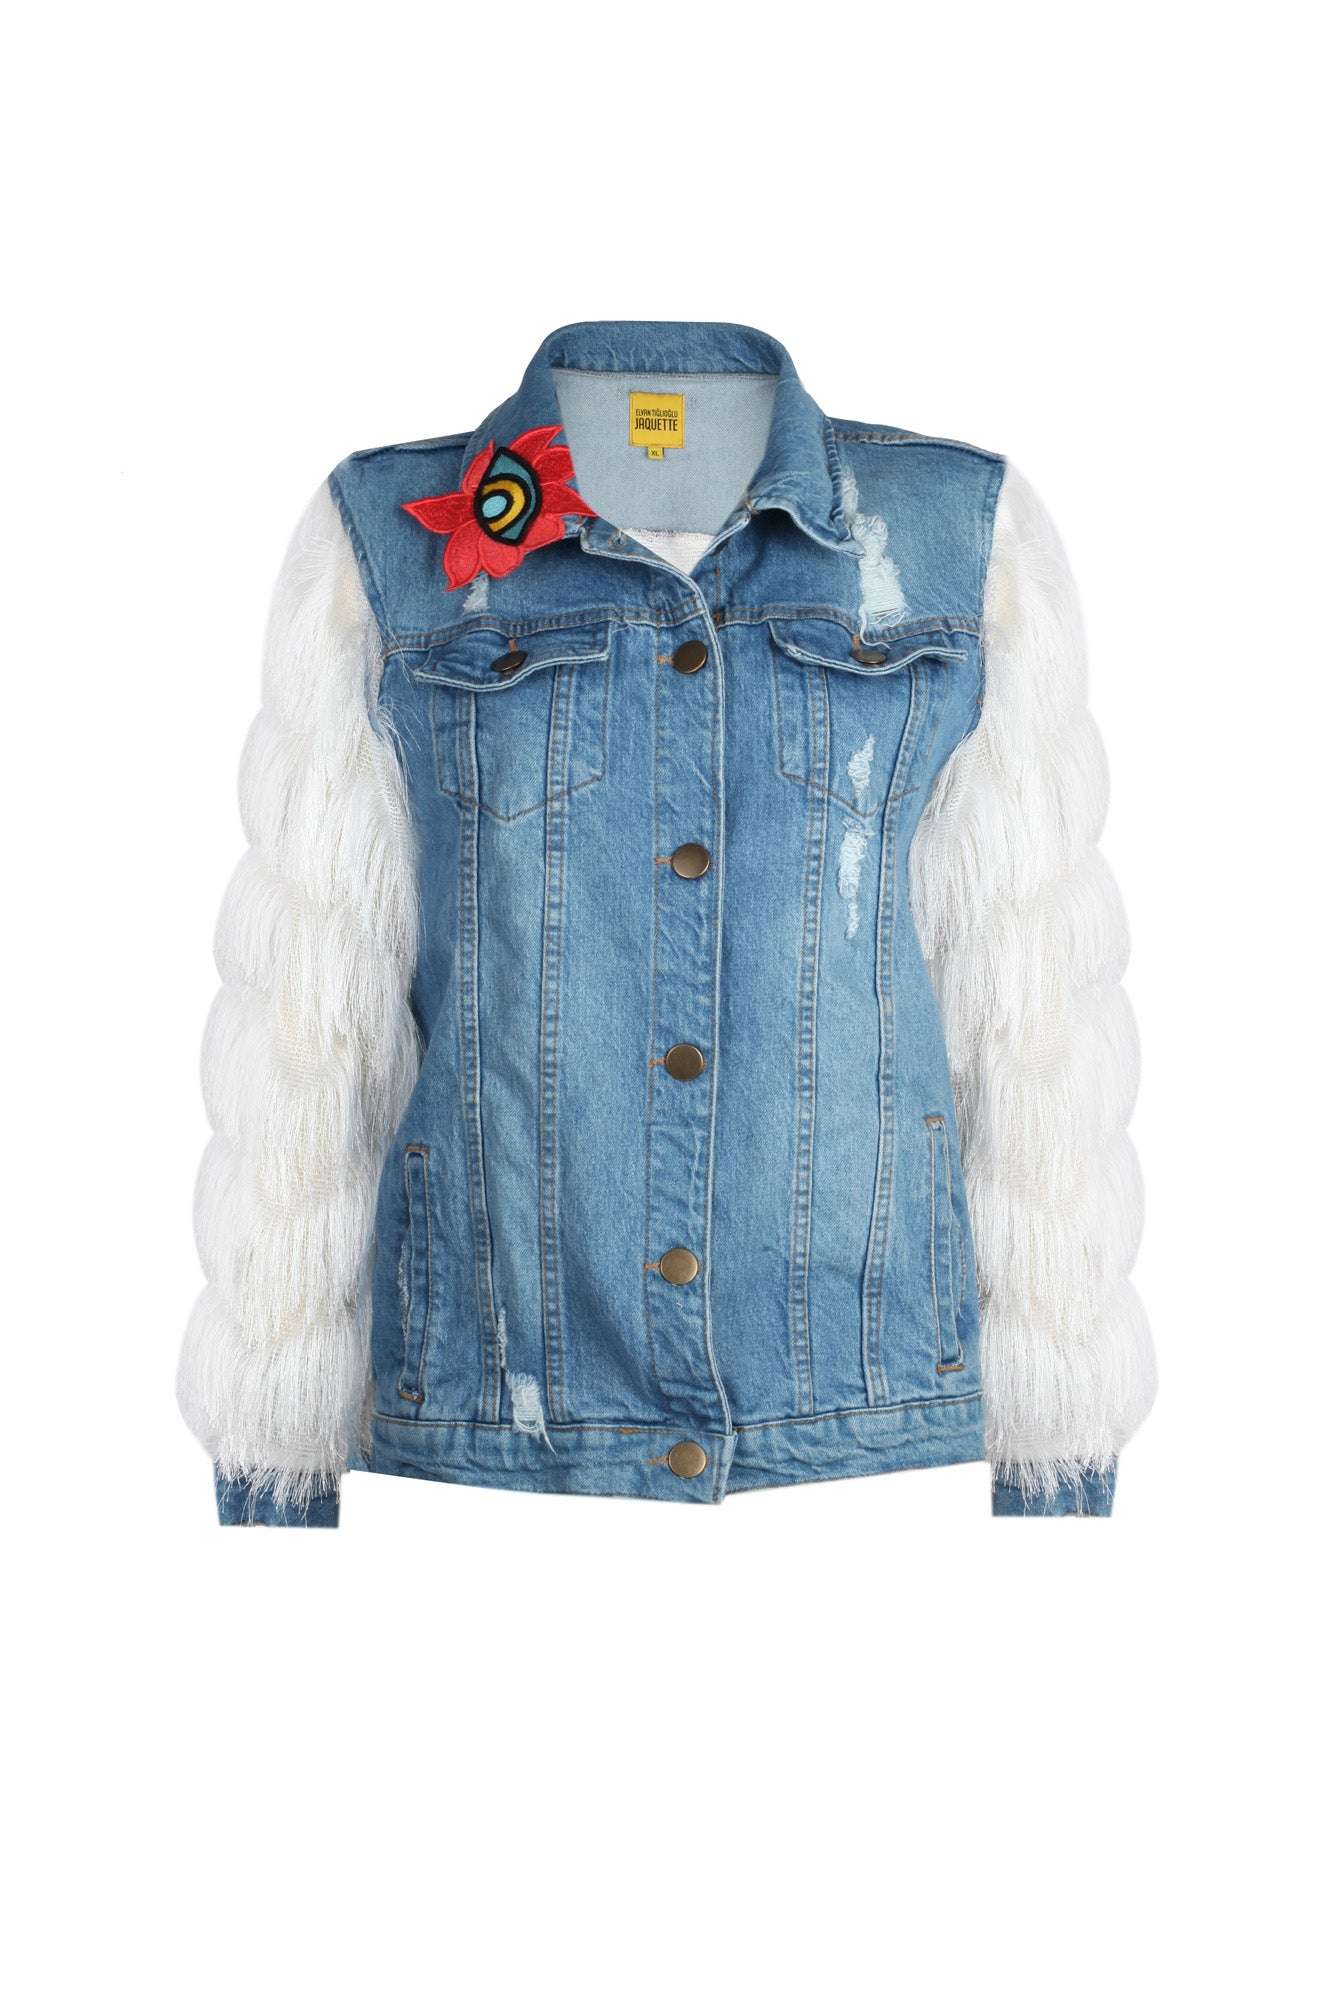 MAVİ LOTUS JEAN JACKET